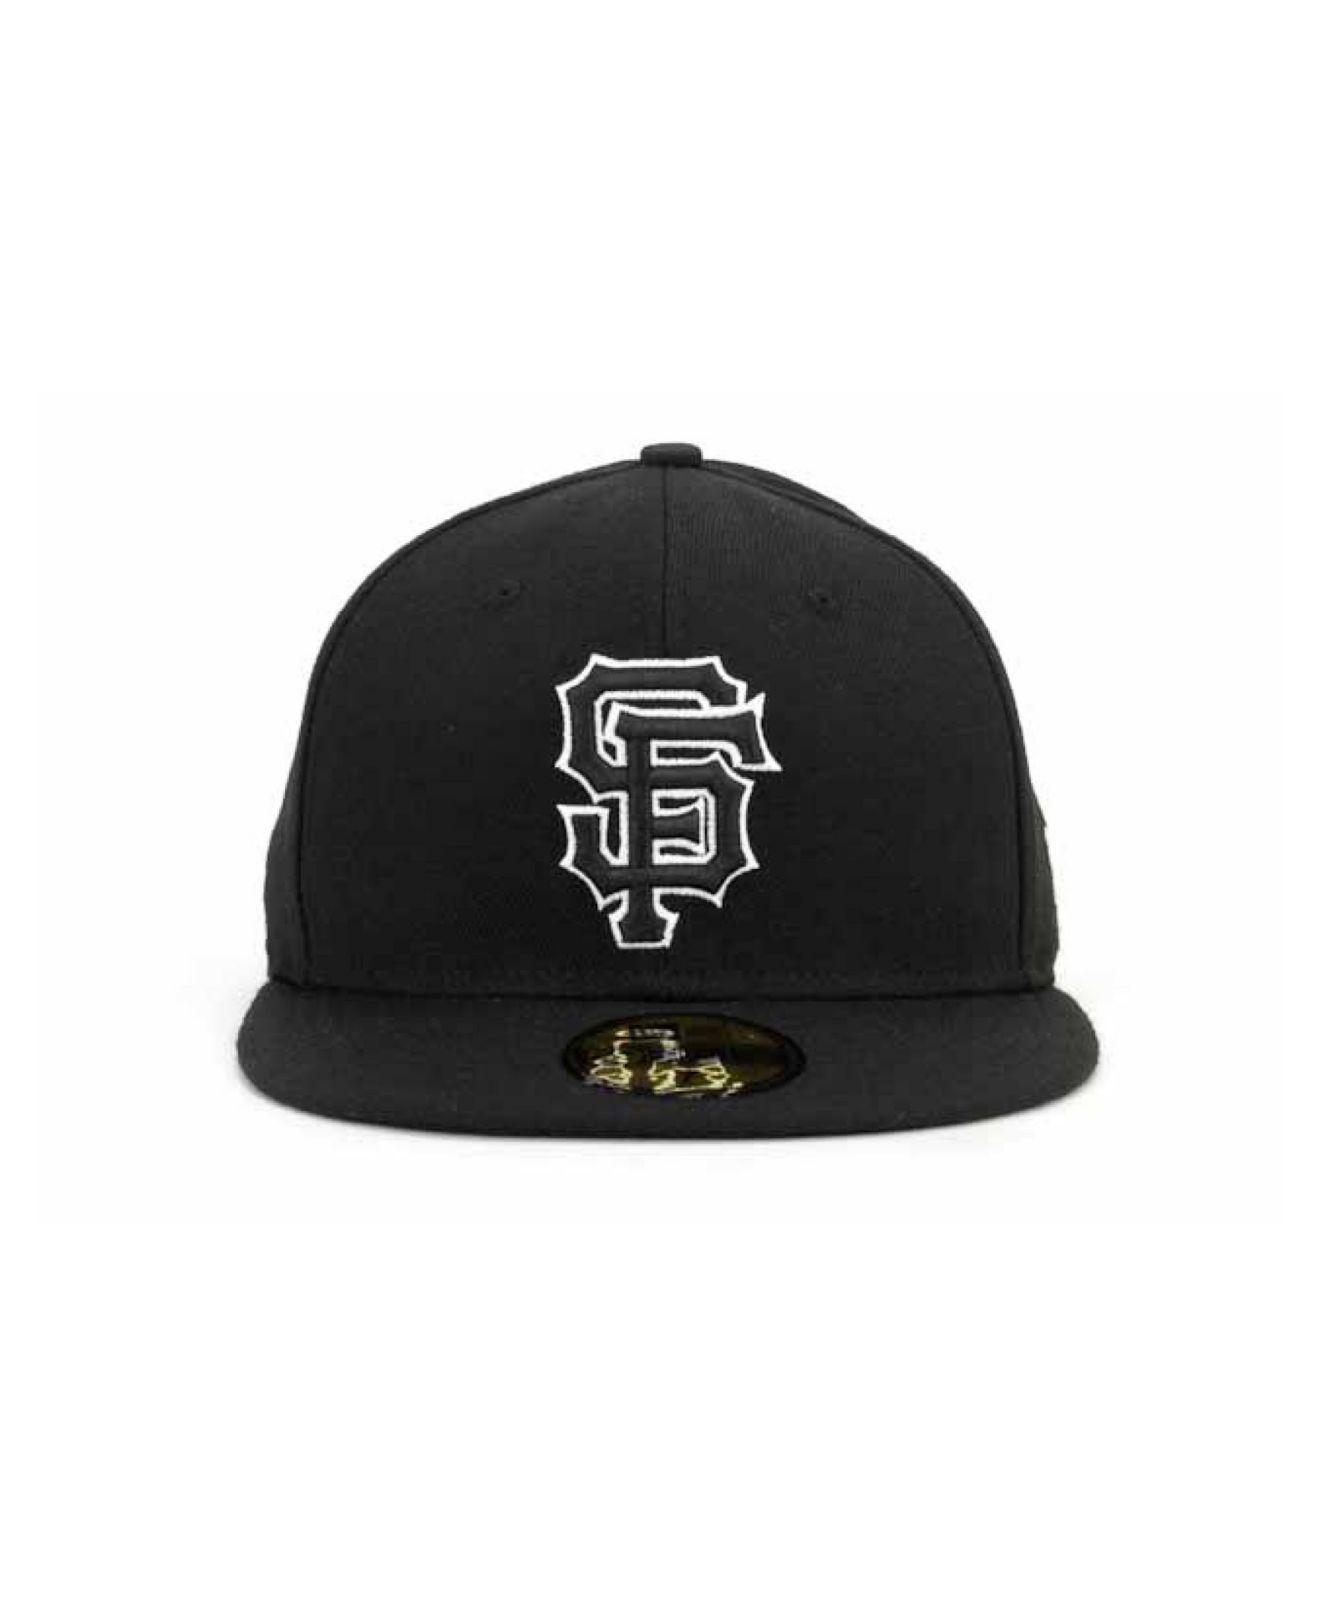 more photos f21d7 15b22 ... shop lyst ktz san francisco giants black and white fashion 59fifty cap  in black for men